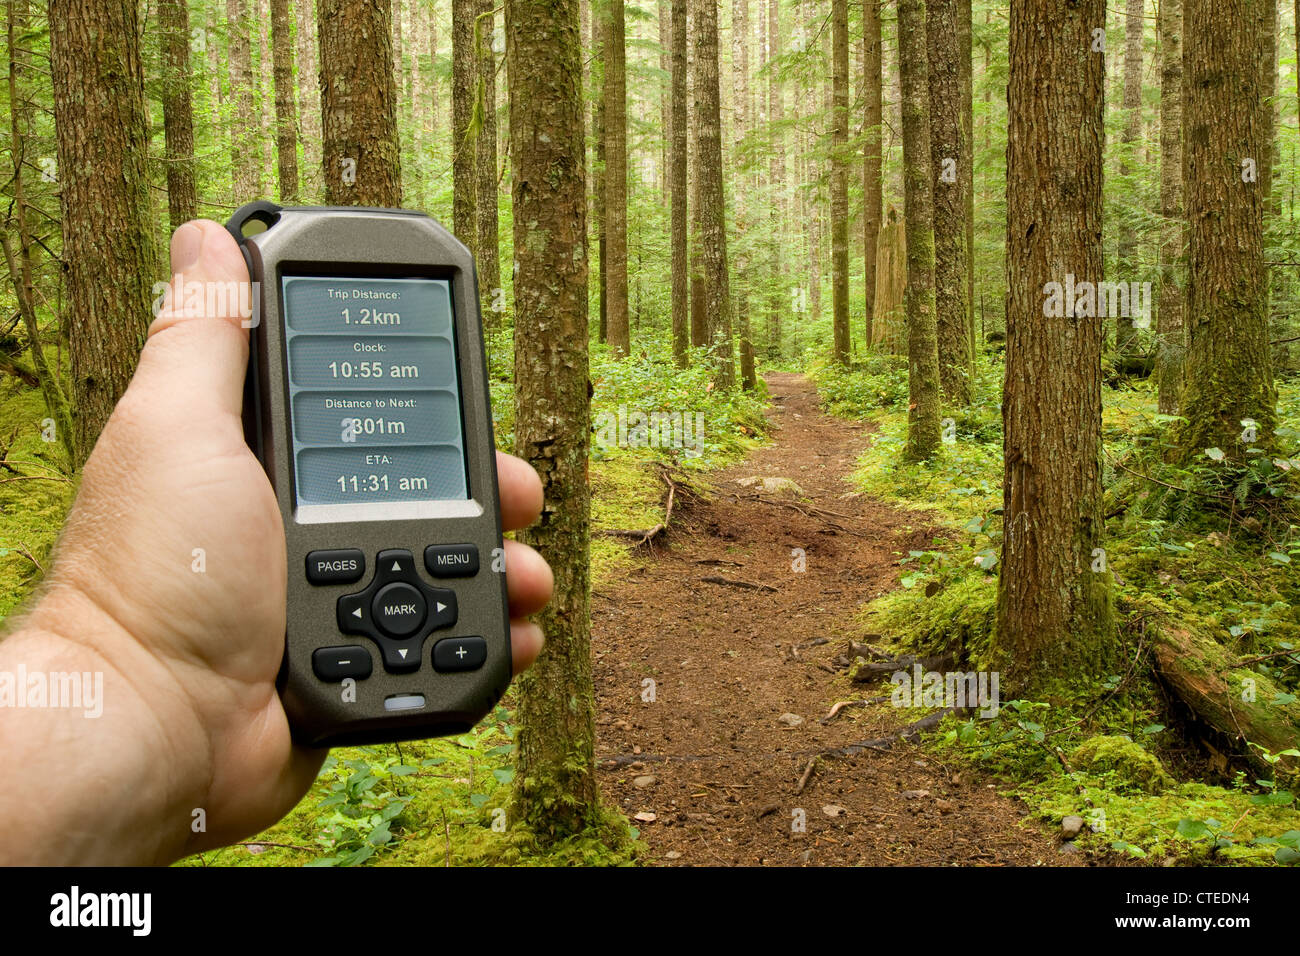 A handheld GPS unit is used to check progress and distance along a forest trail - Stock Image